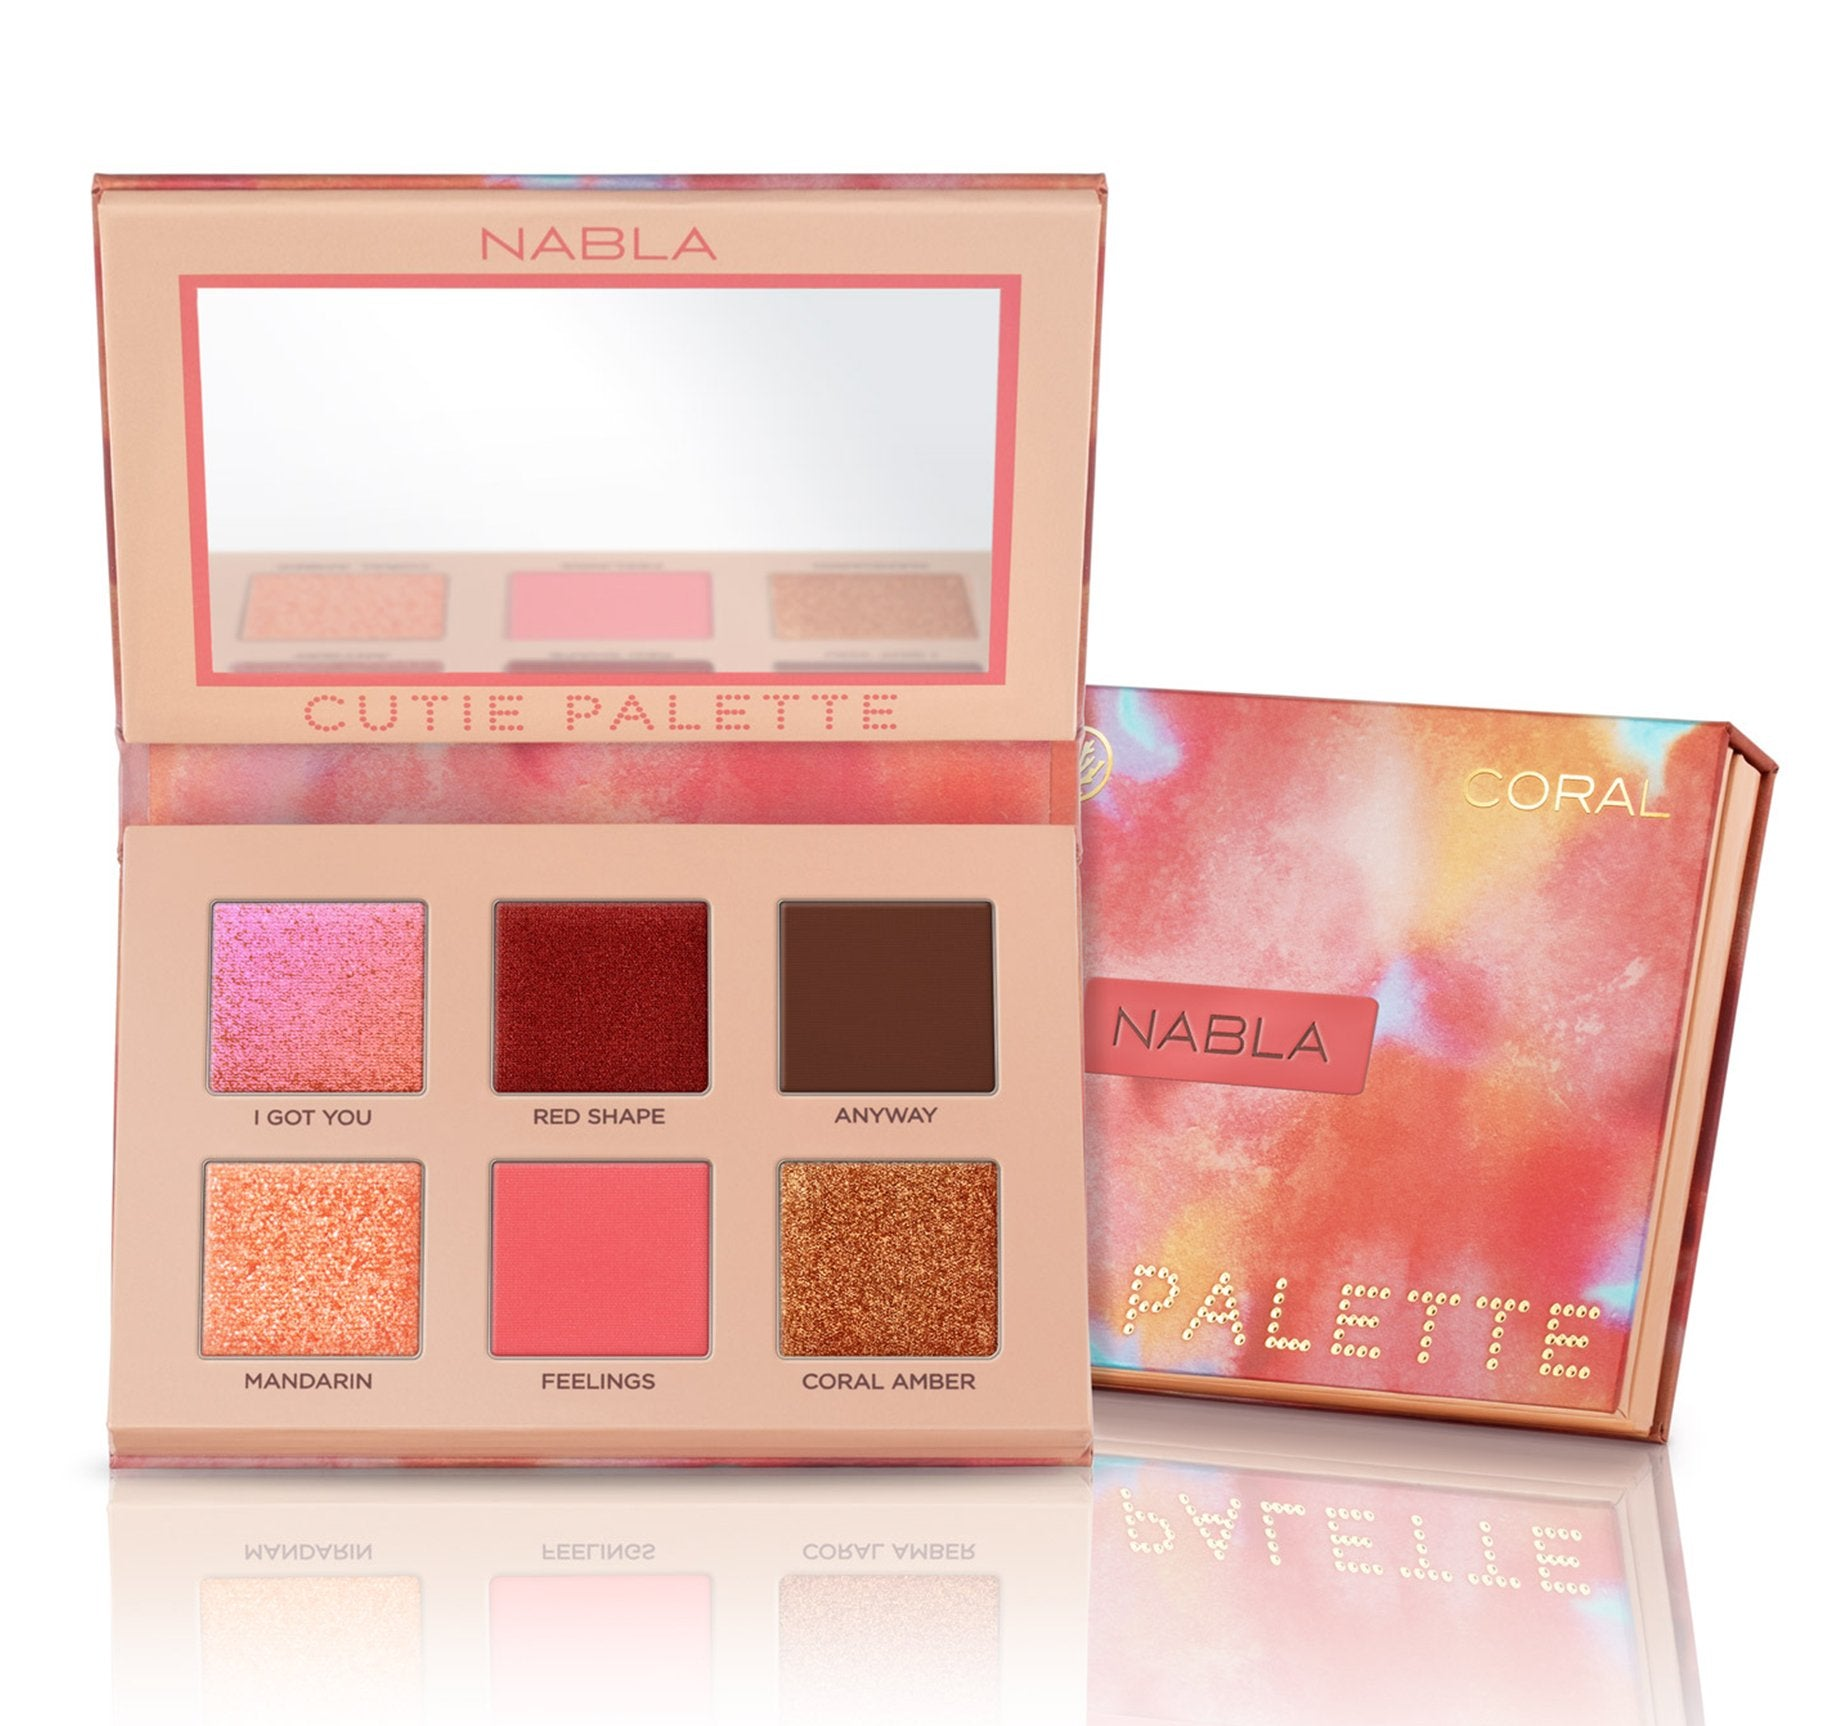 CUTIE PALETTE™ - CORAL, view larger image